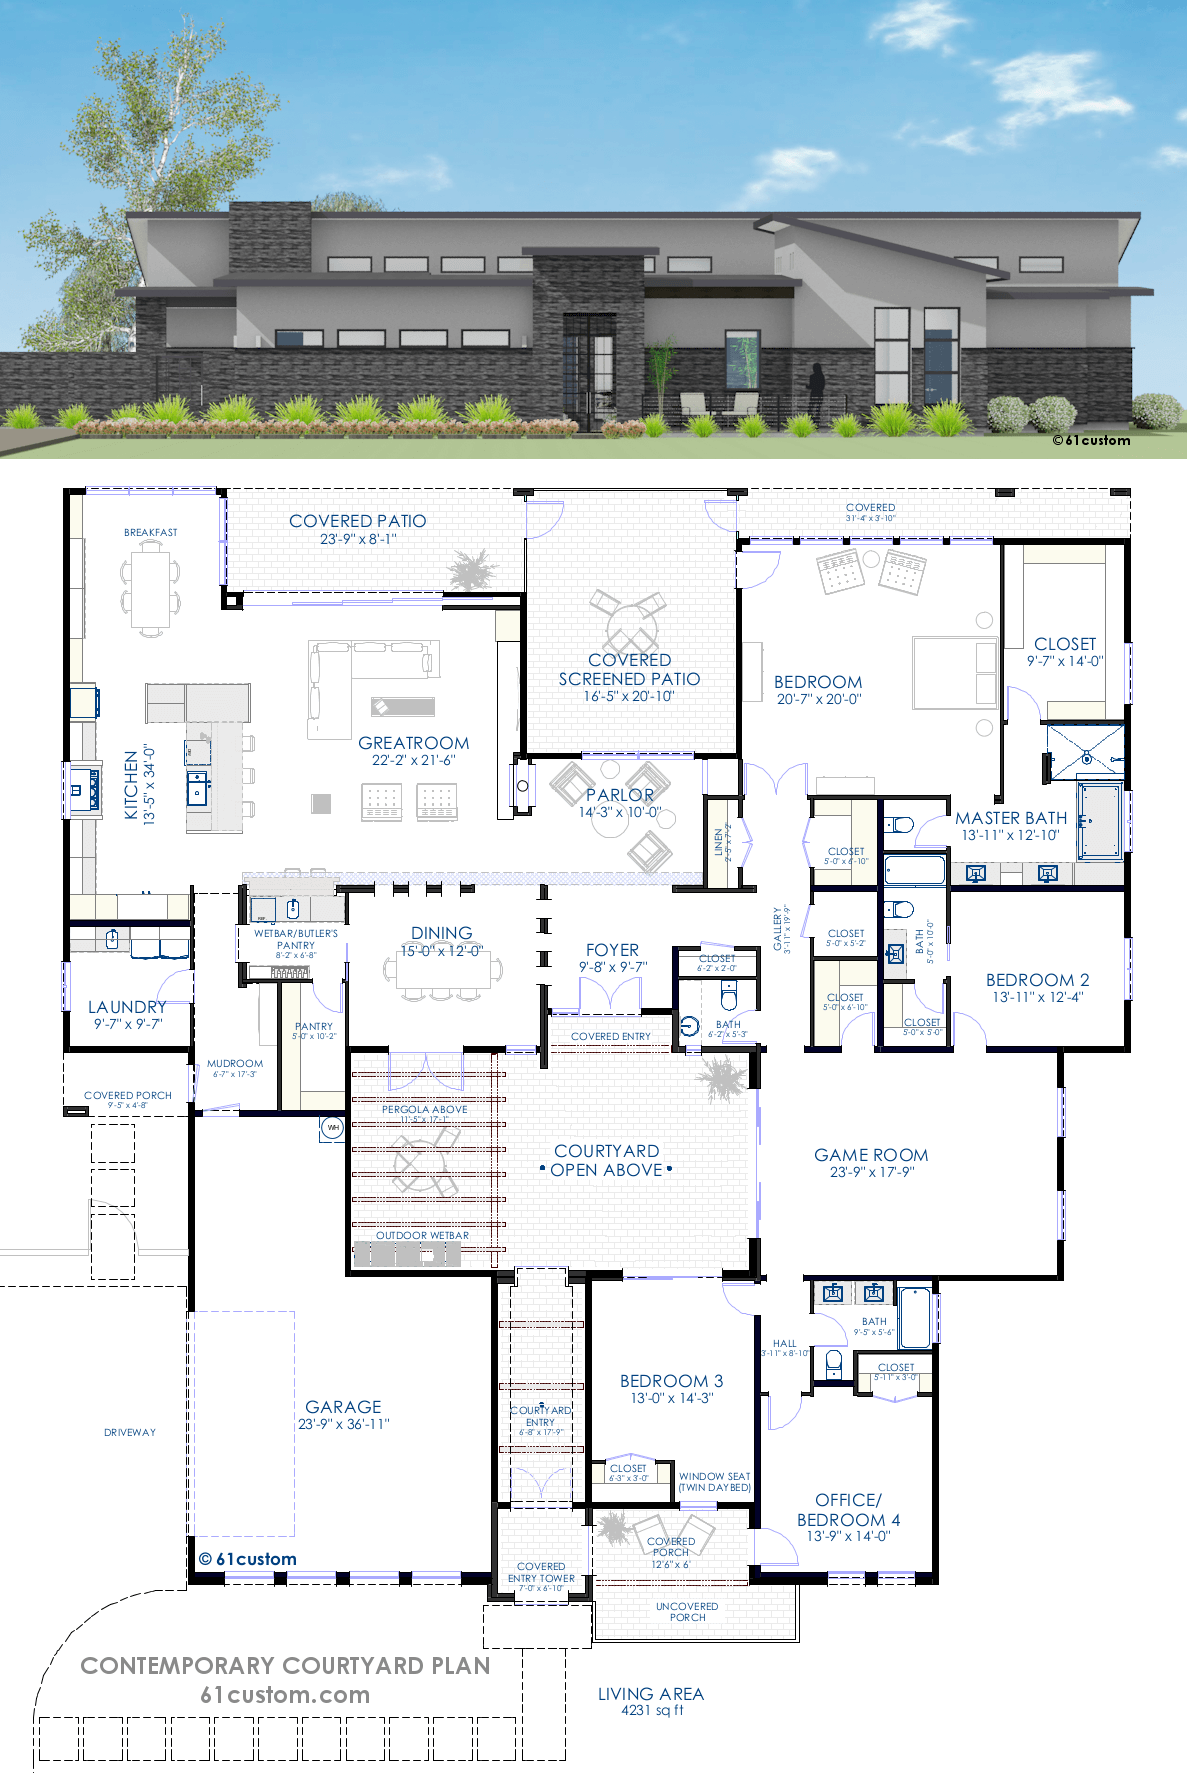 Contemporary courtyard house plan 61custom modern for New home blueprints photos